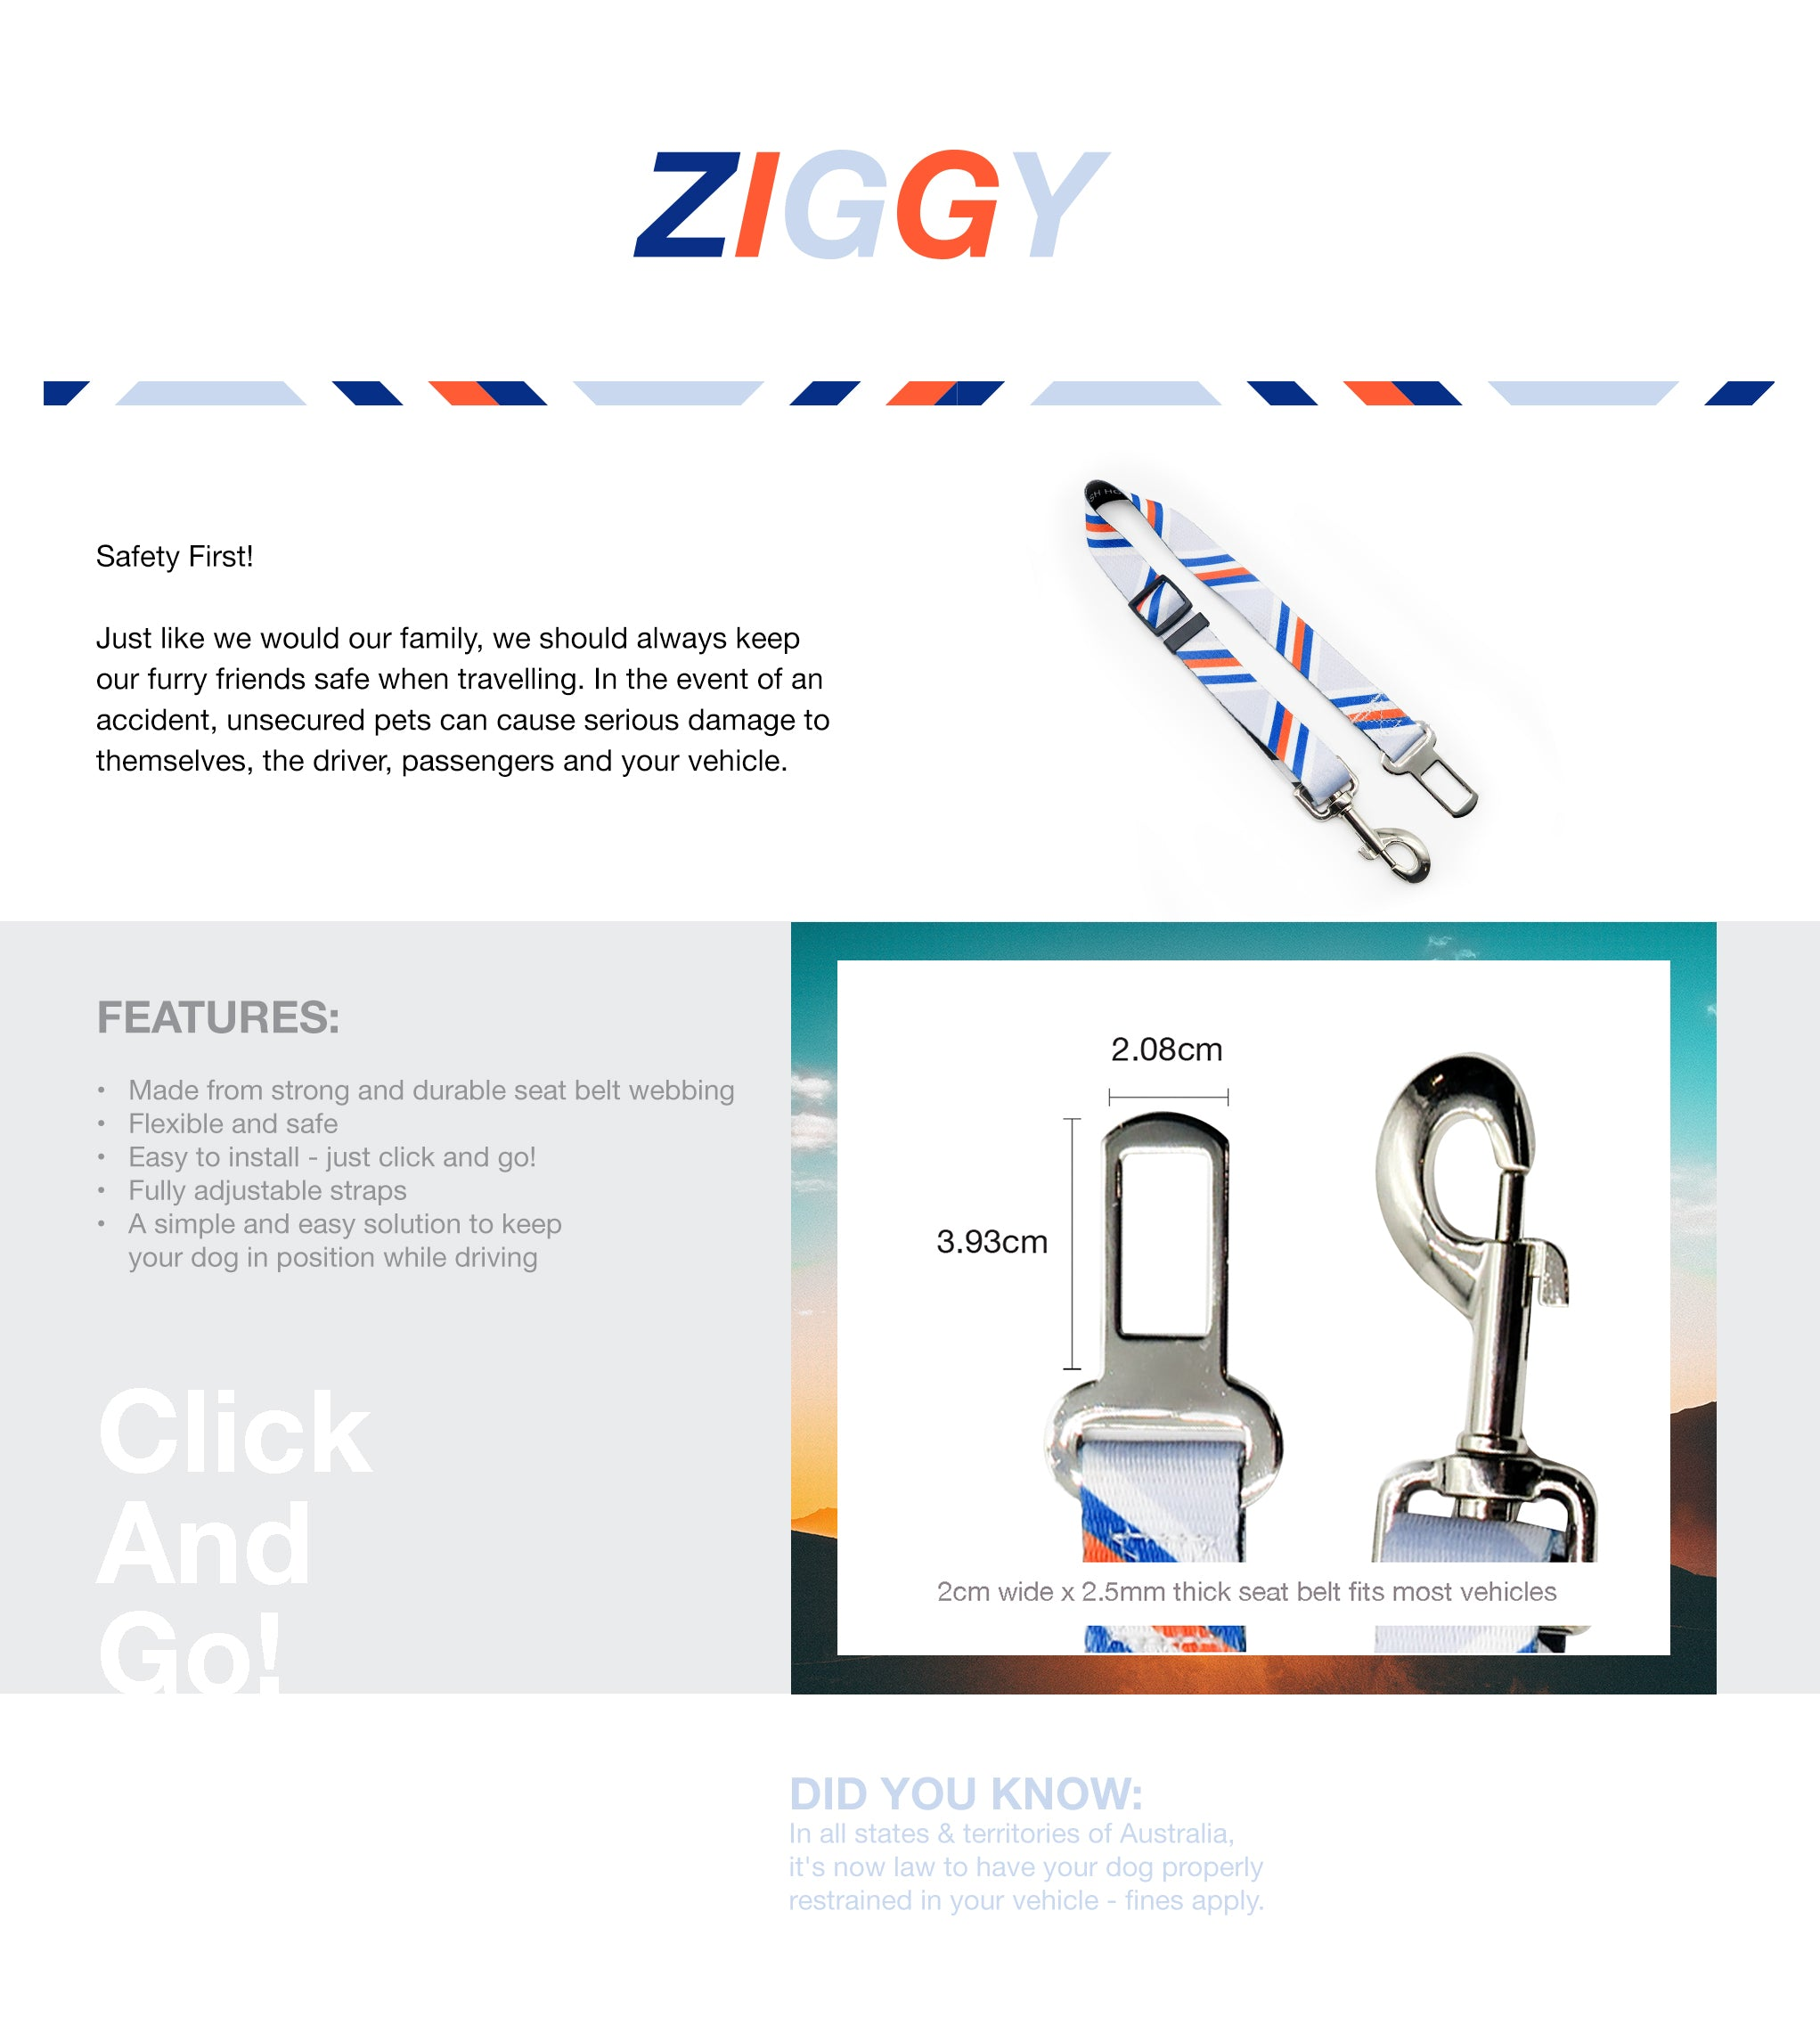 Ziggy Seat Belt